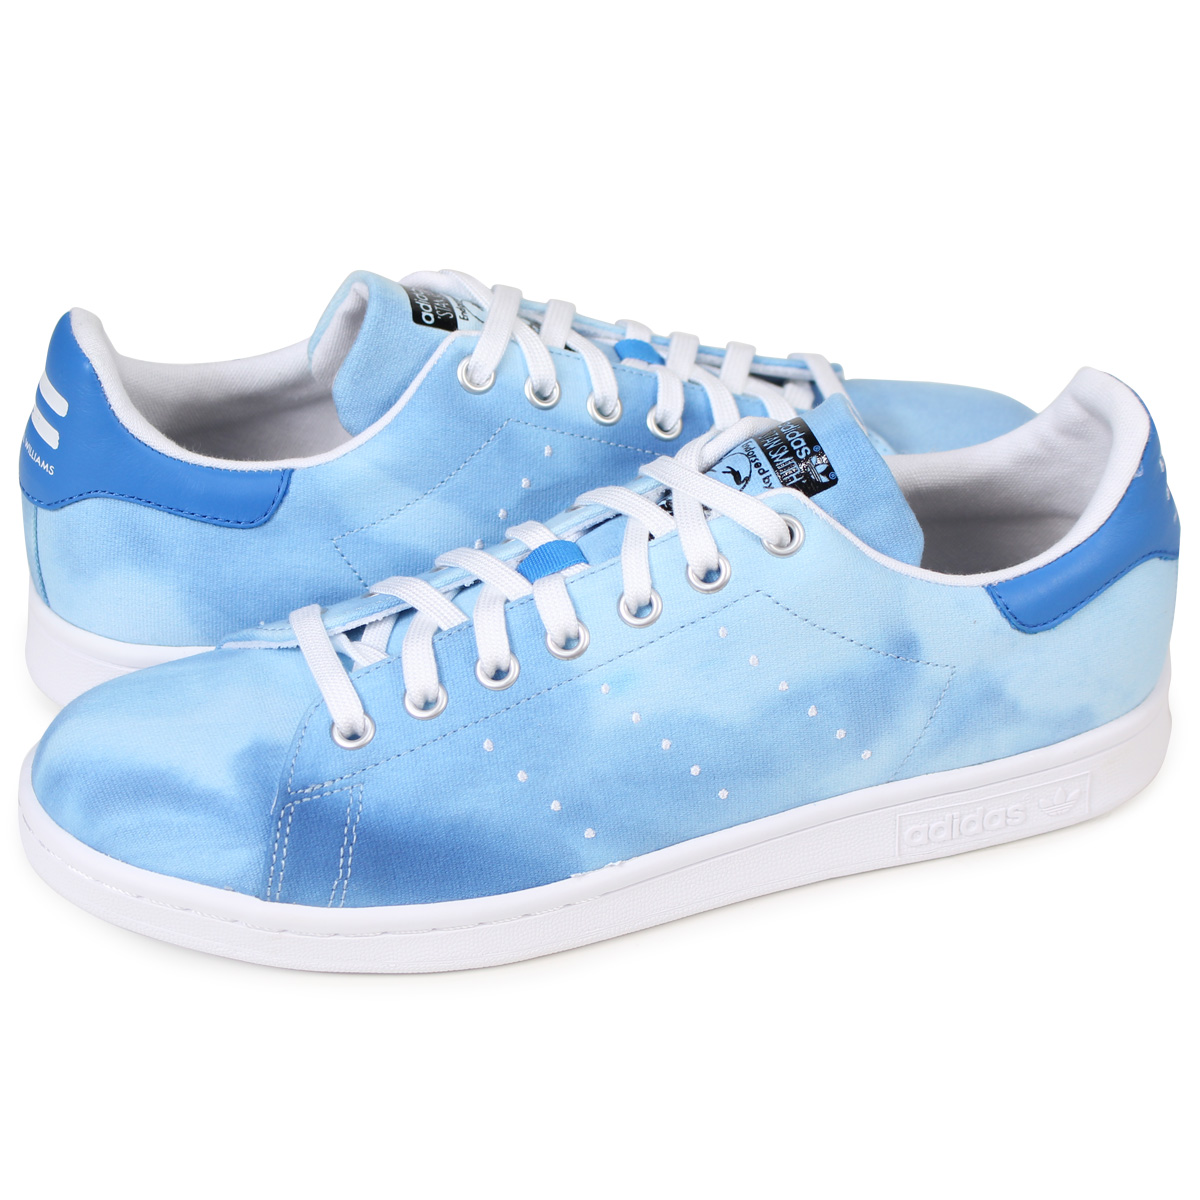 best sneakers 1bcb8 098cc adidas Originals PW HU HOLI STAN SMITH Adidas Stan Smith sneakers Farrell  Williams men collaboration AC7045 blue originals [load planned Shinnyu load  ...